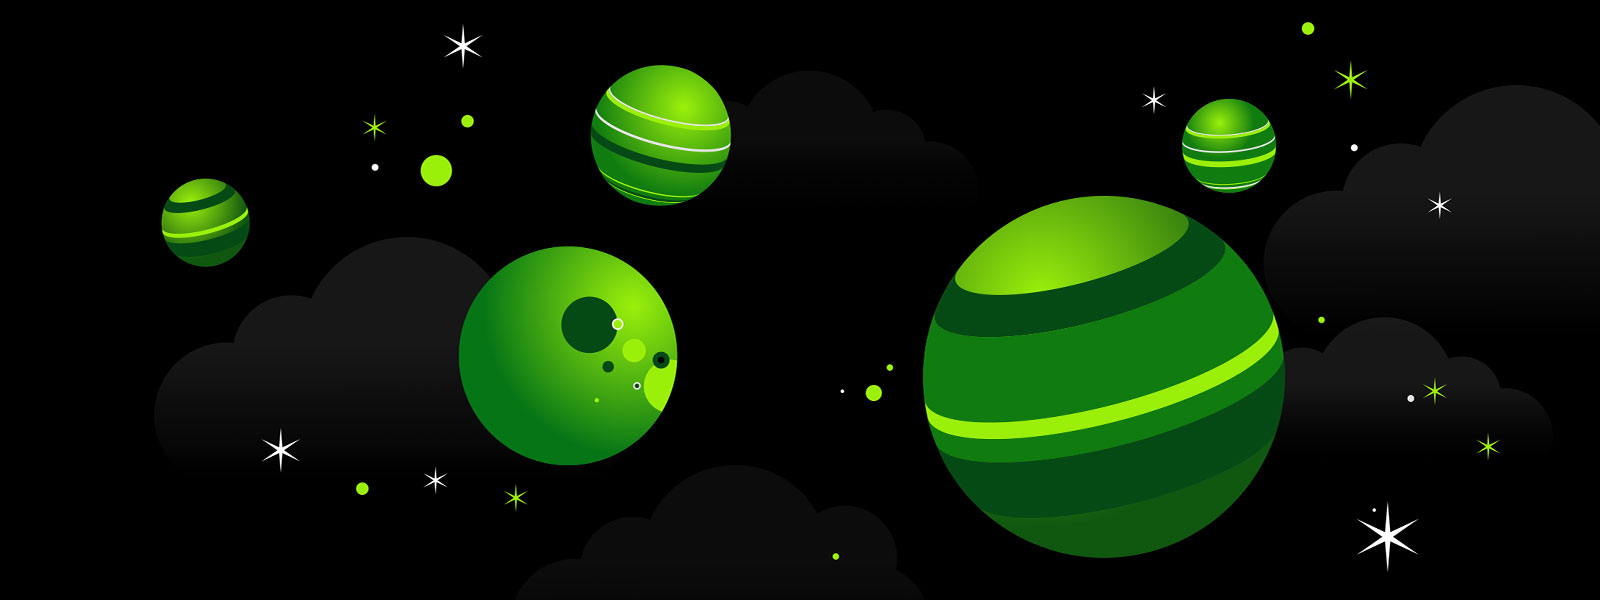 Xbox green planets and moons in a starry scene.